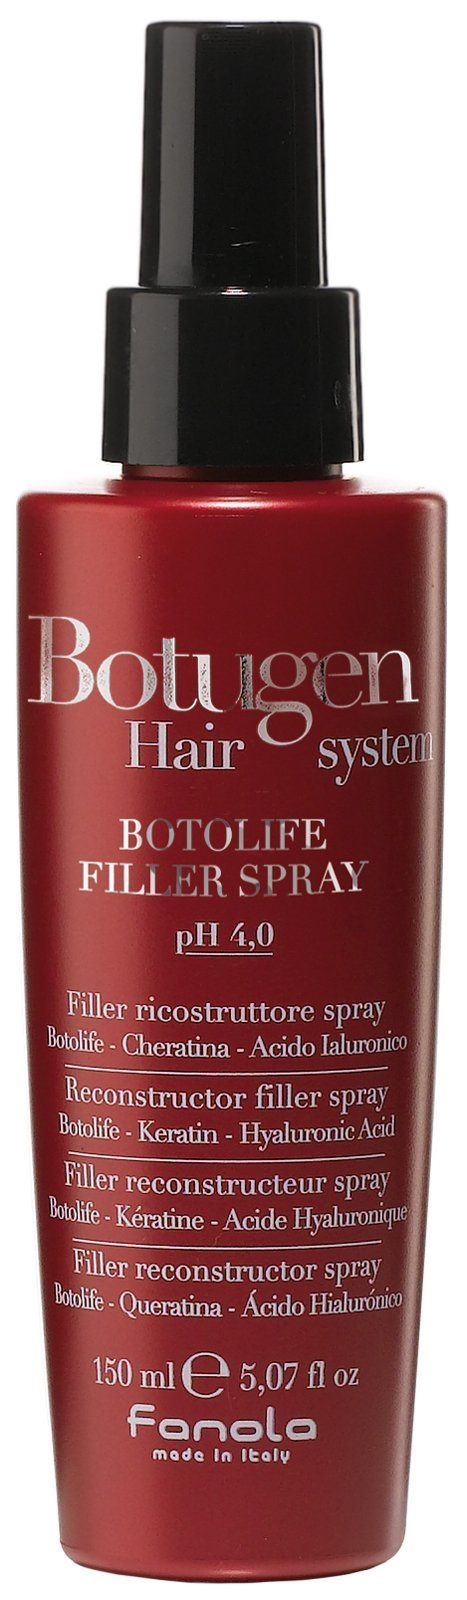 Fanola Botolife Filler Reconstructor Spray, 150 ml Hair Treatments Fanola Default Title